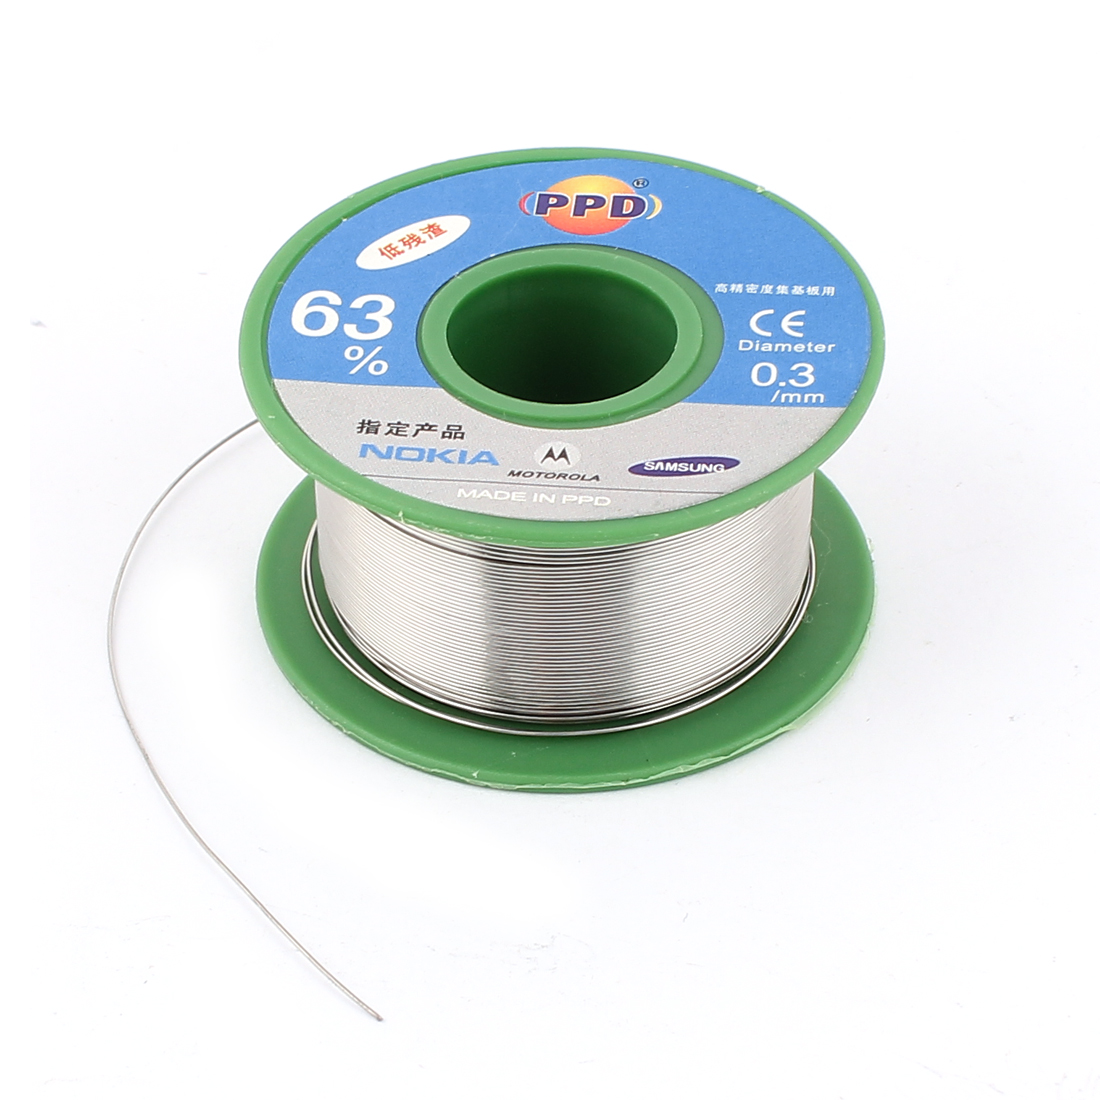 0.3mm Dia 63/37 Tin Lead Rosin Core Solder Flux Soldering Welding Iron Wire Reel Roll